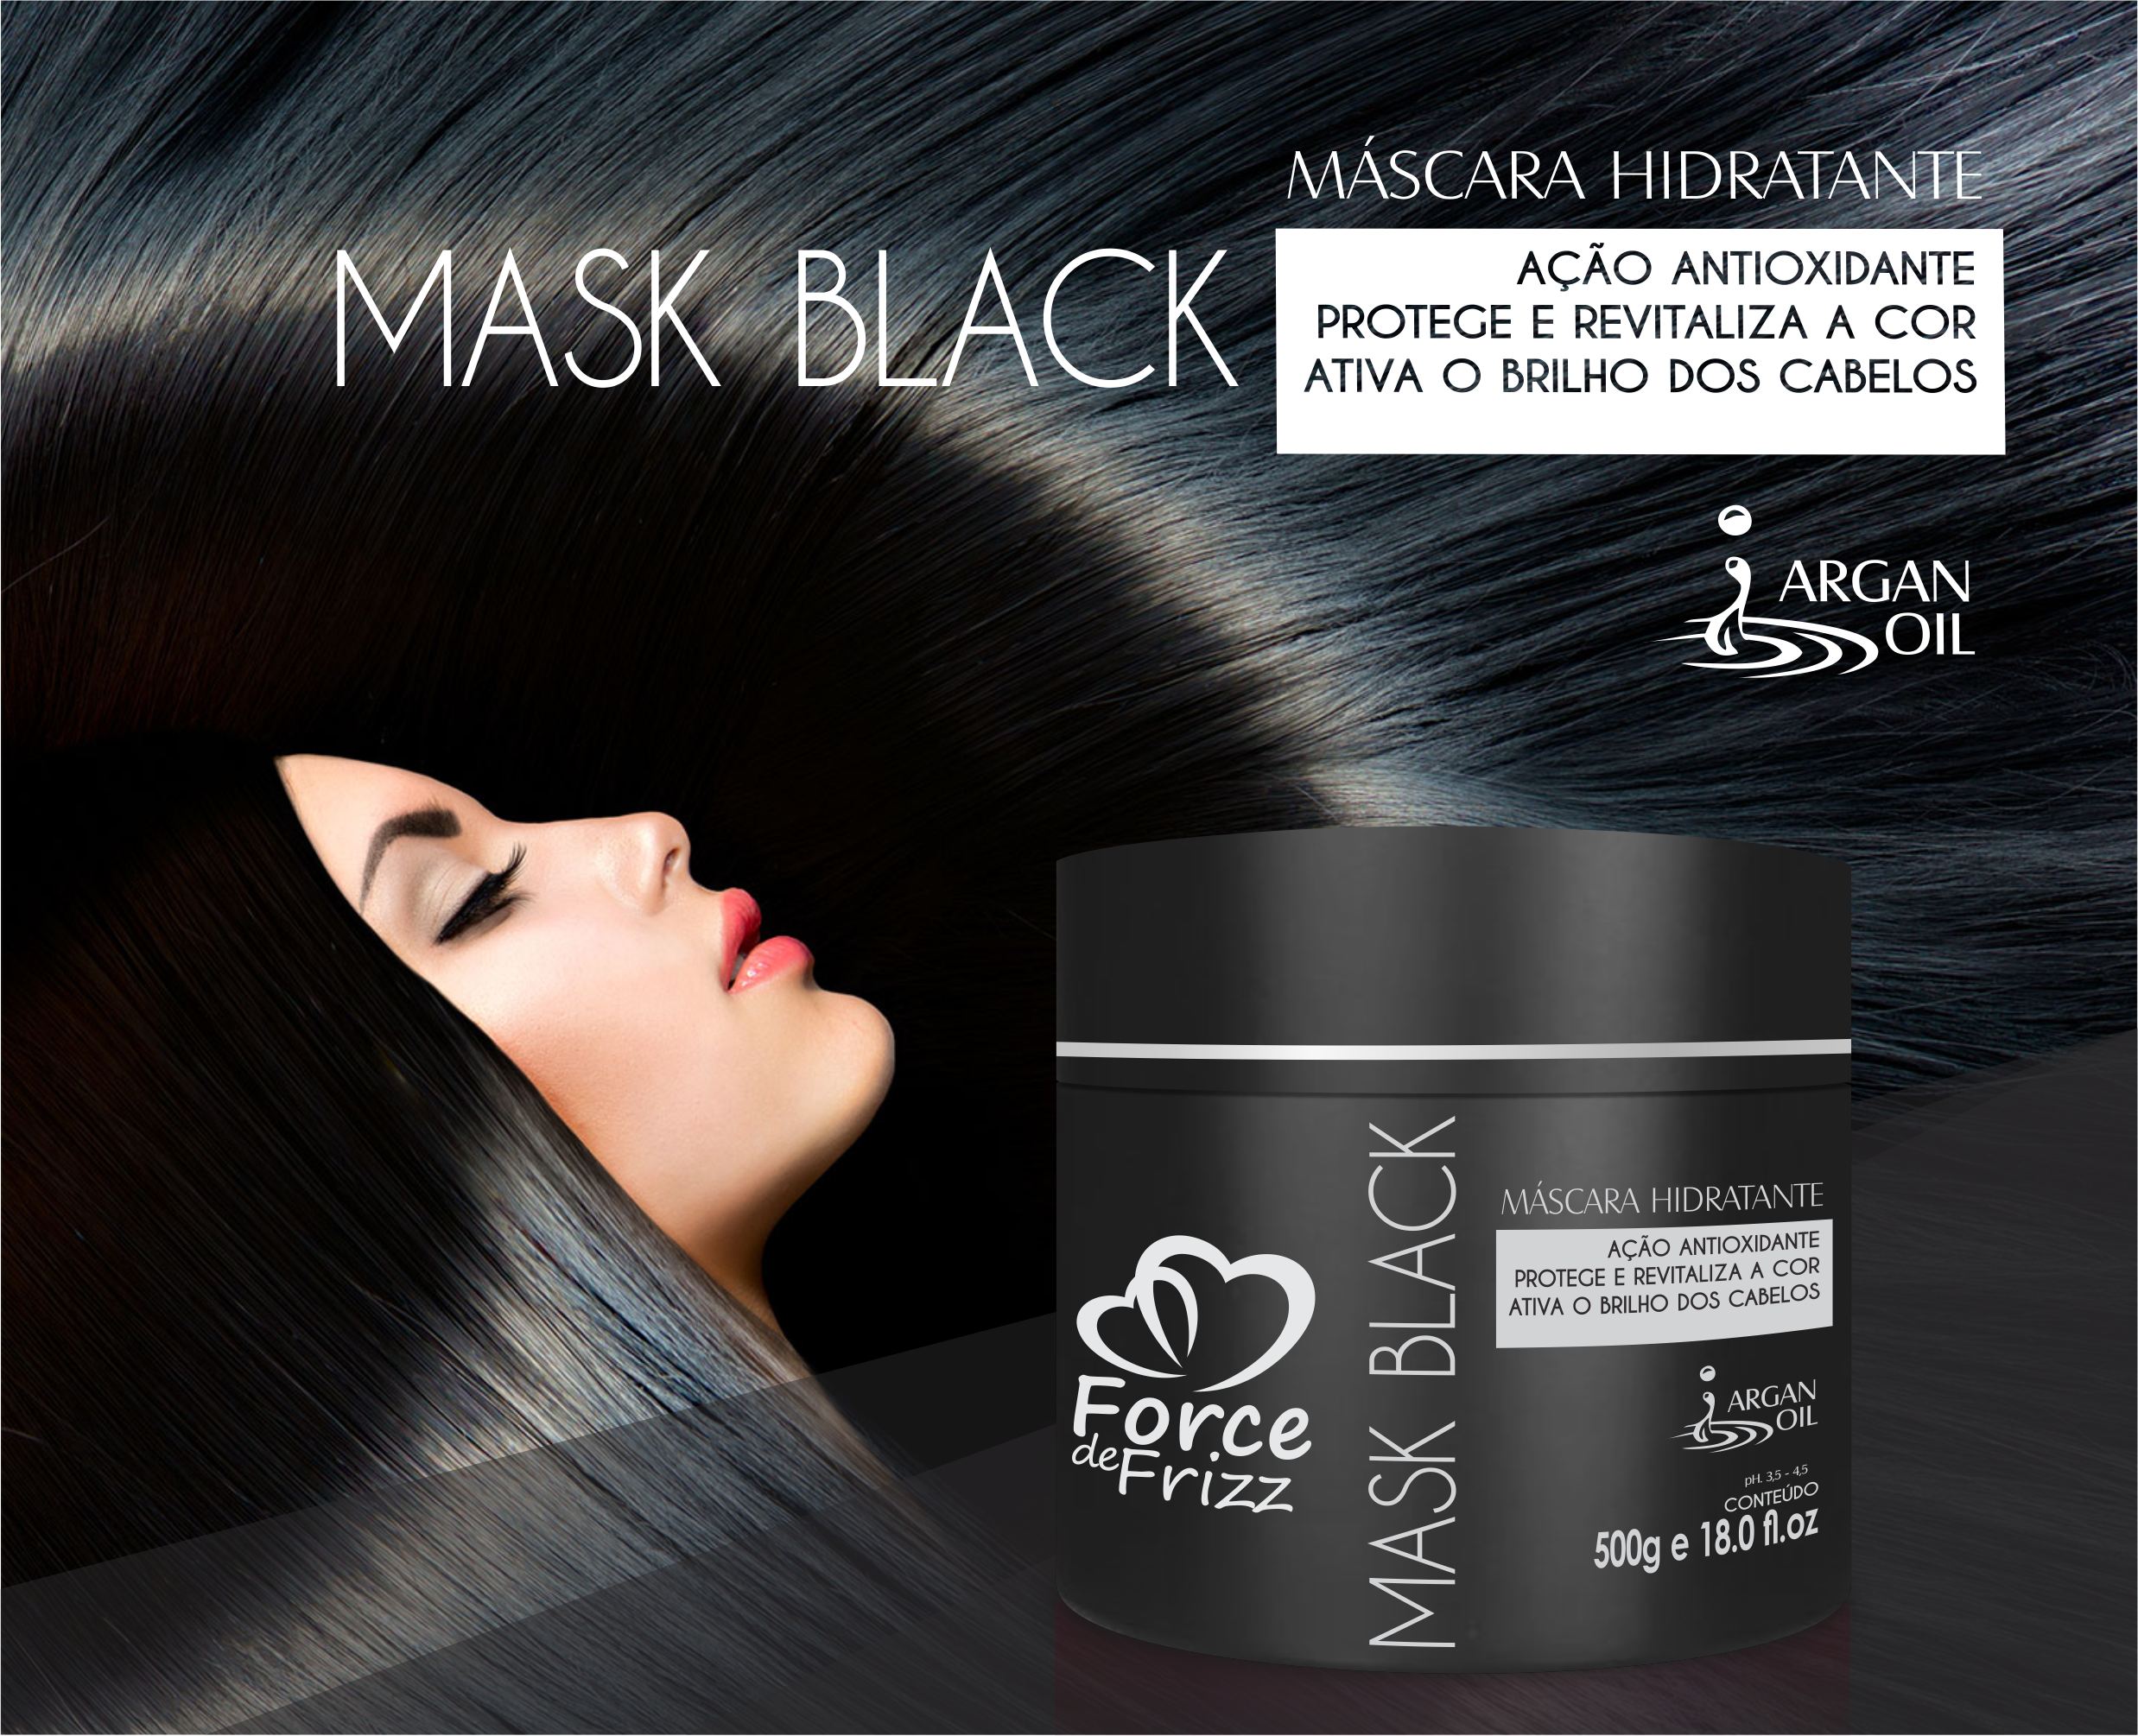 mask black kit